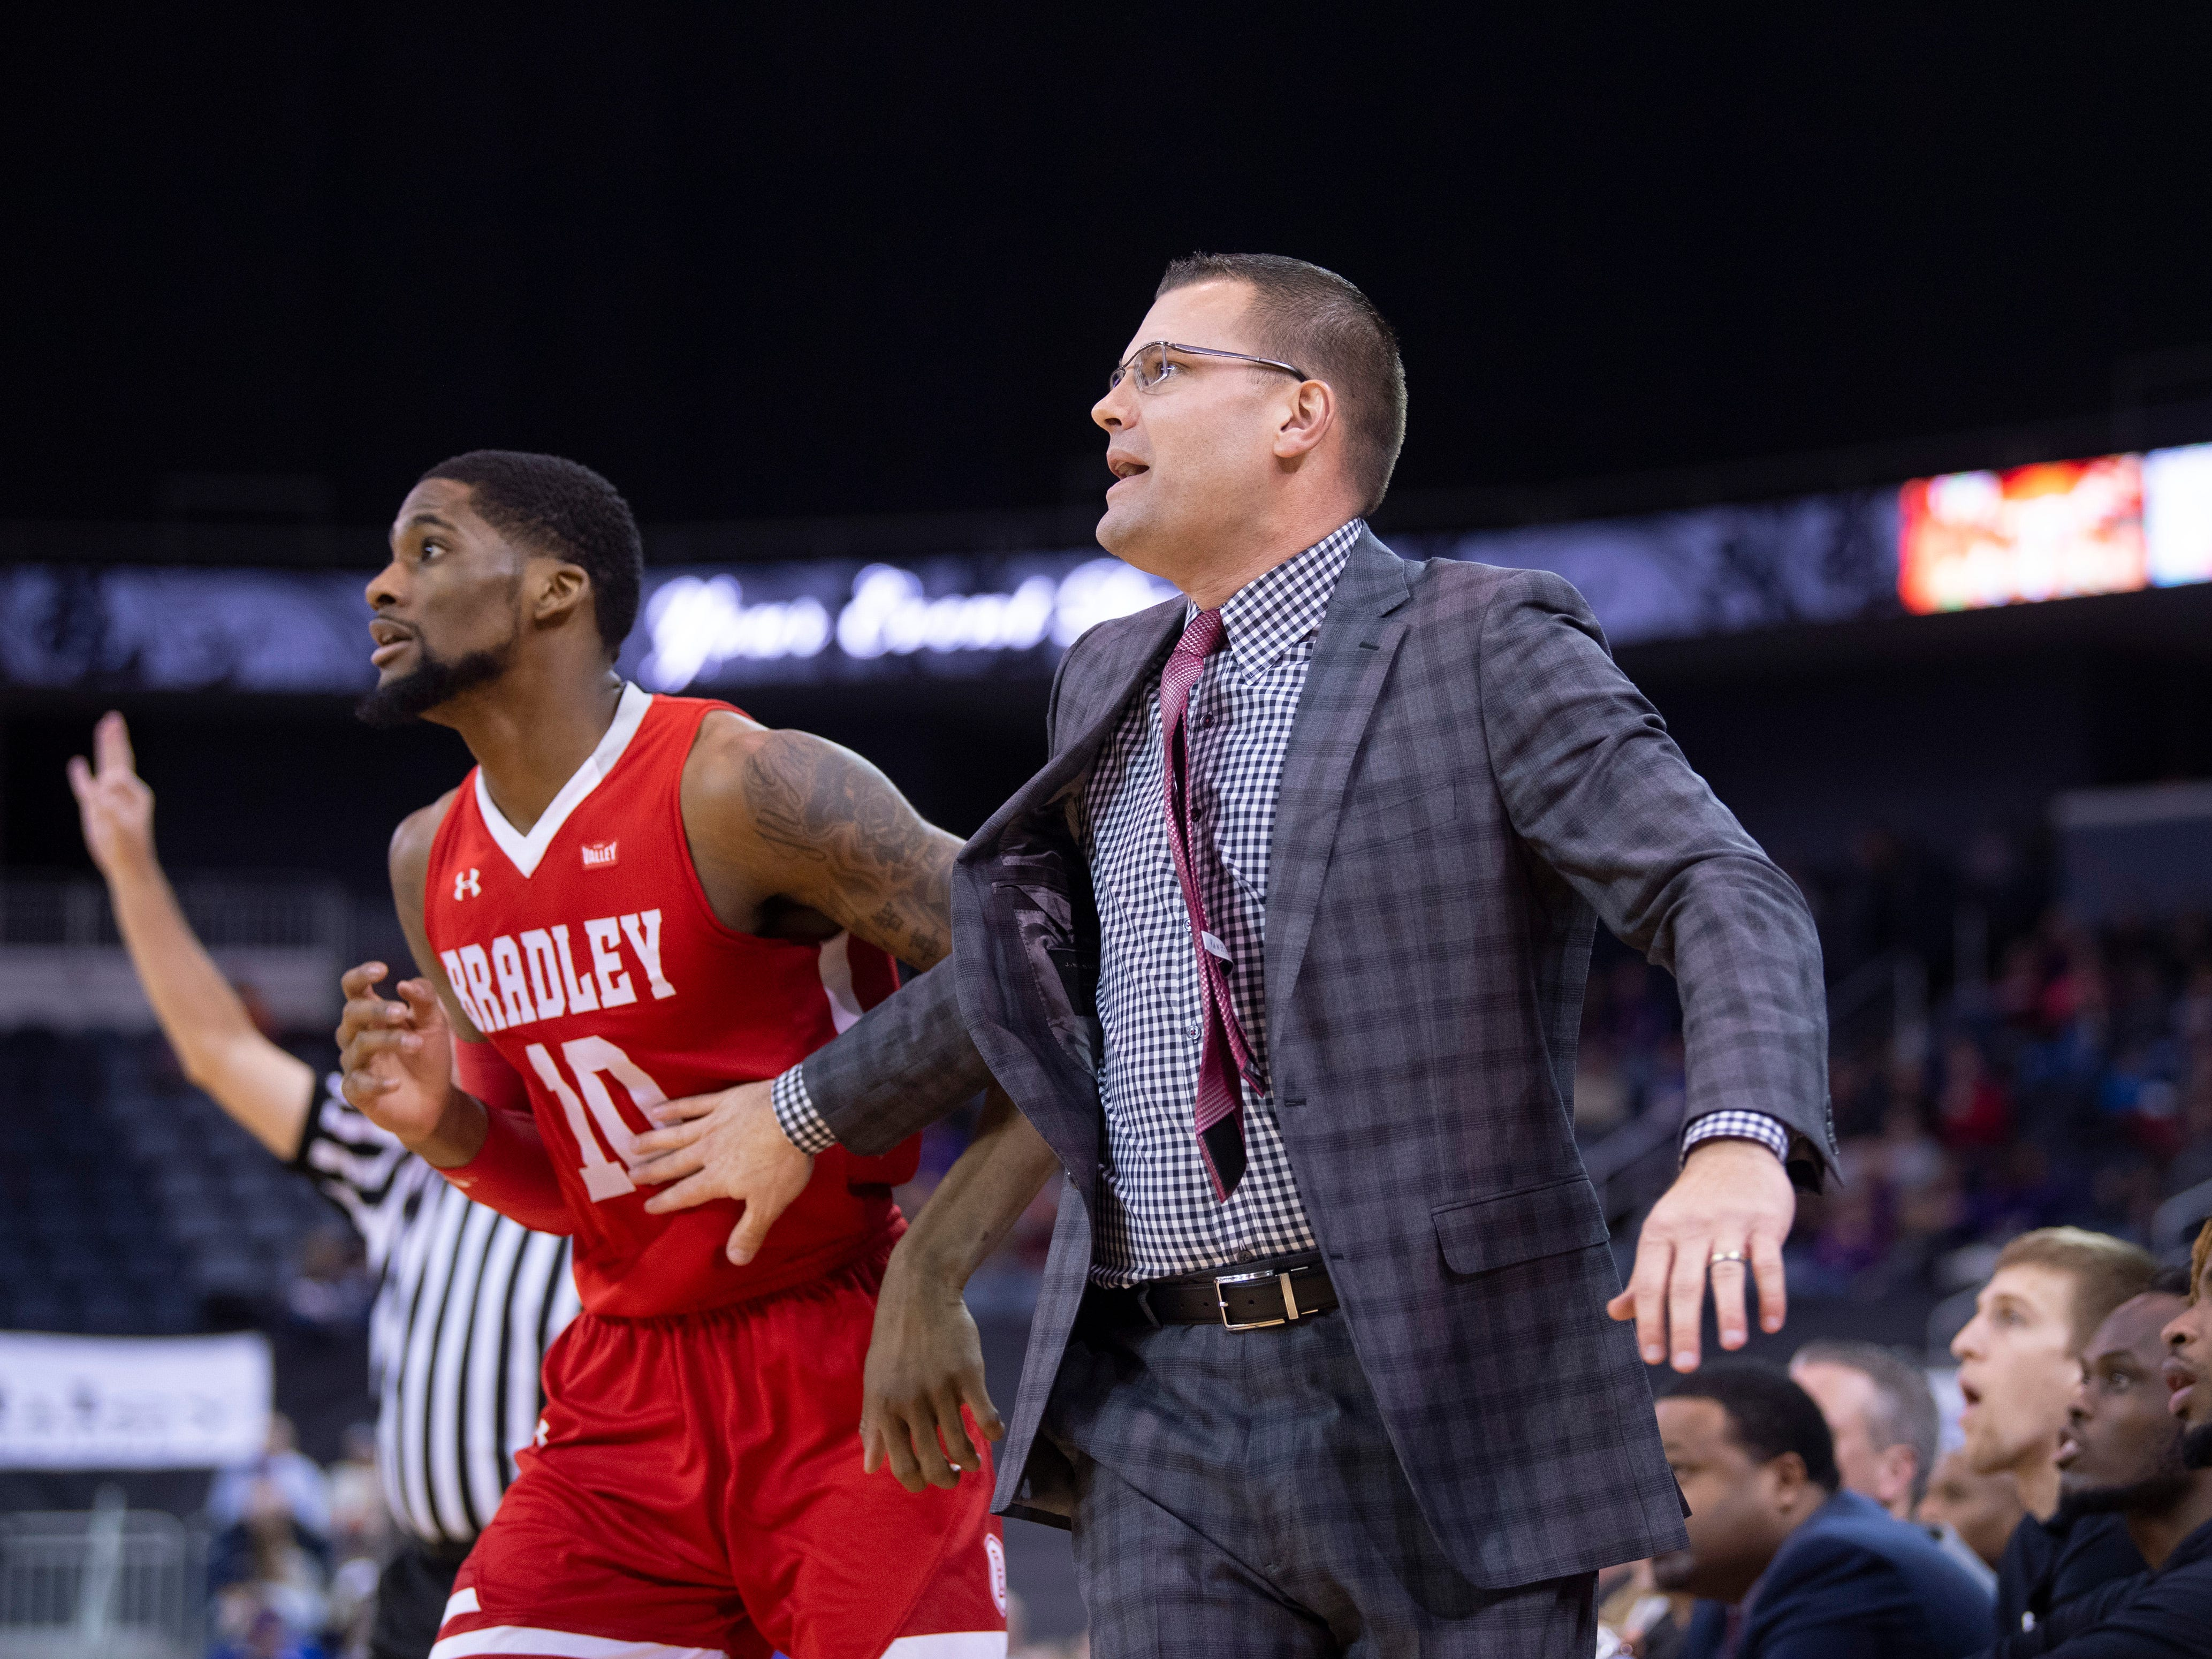 Bradley University Head Coach Brian Wardle holds Bradley's Elijah Childs (10) back as Evansville put up a 3-pointer during their game at the Ford Center Wednesday night.